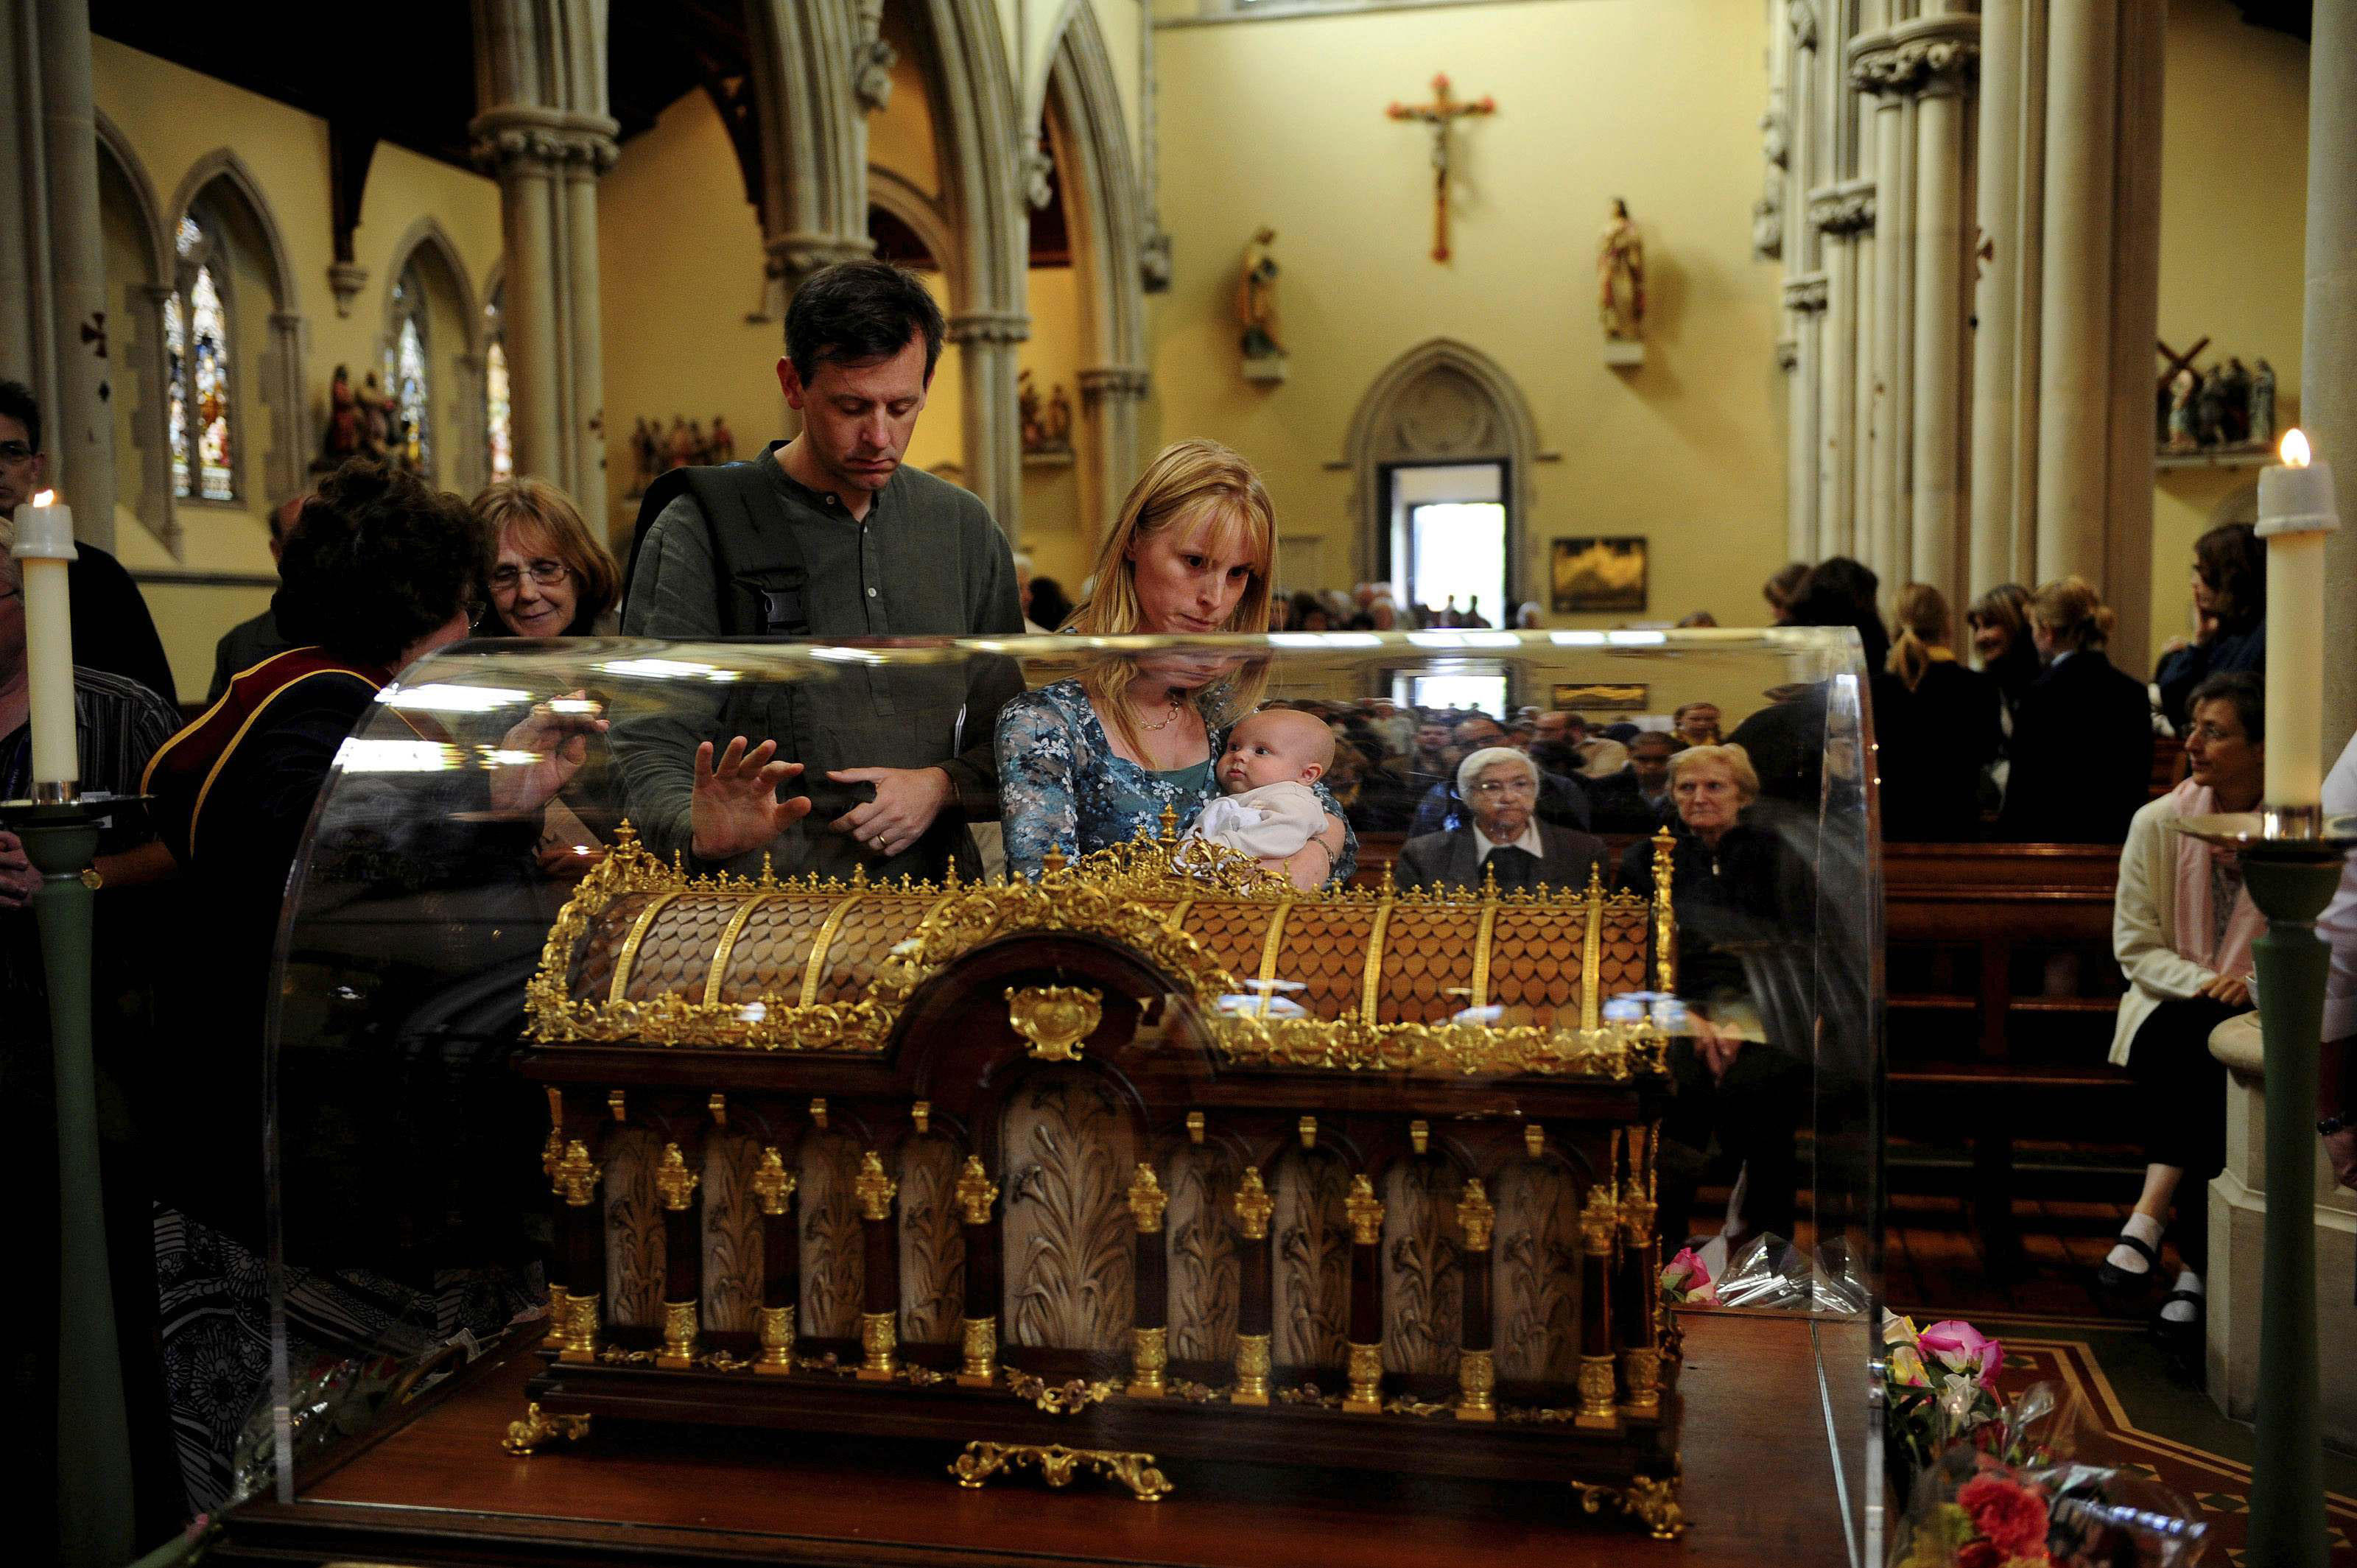 The relics of ST Therese will be accompanied by the relics of her parents, Sts Louie and Zelie Martin to Australia. Photo:CNS/Kieran Doherty.